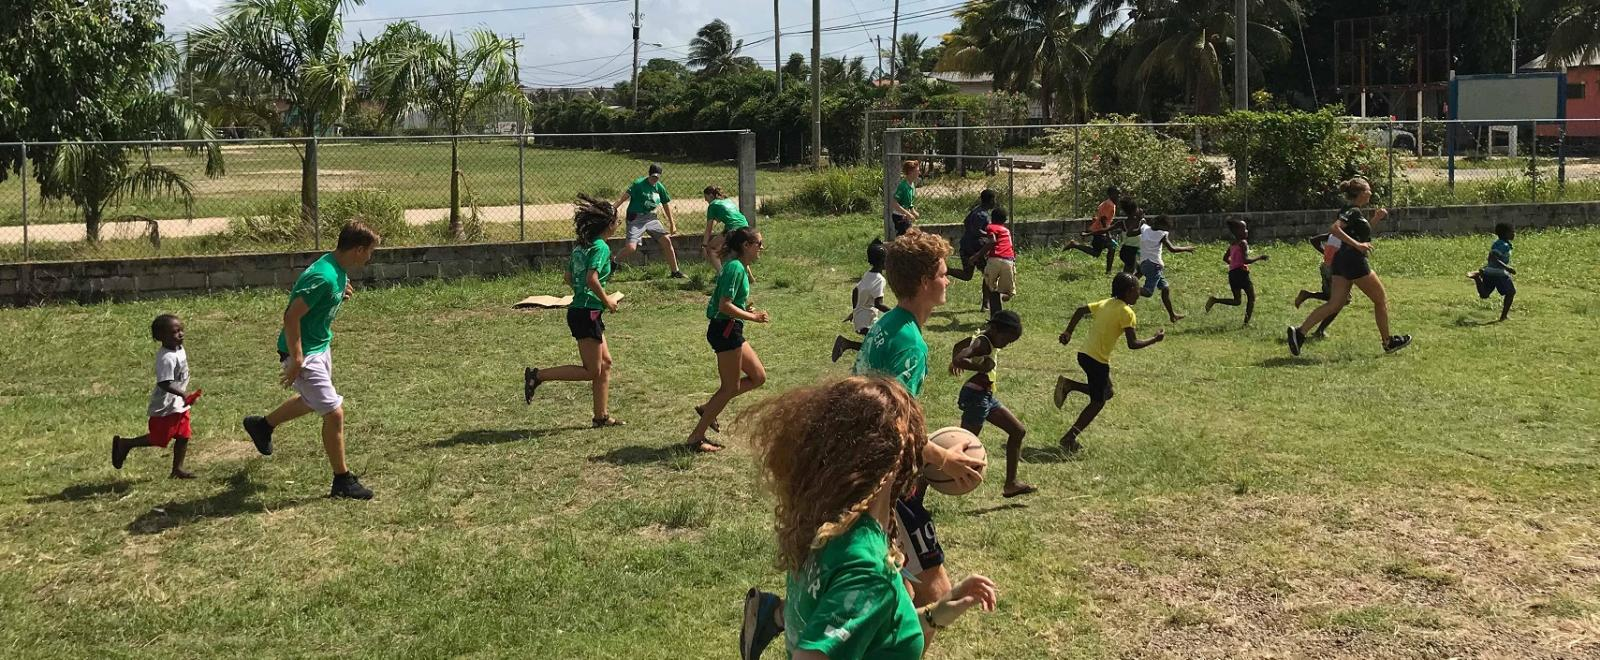 Projects Abroad Sports Coaching volunteers play sports games with children in Belize